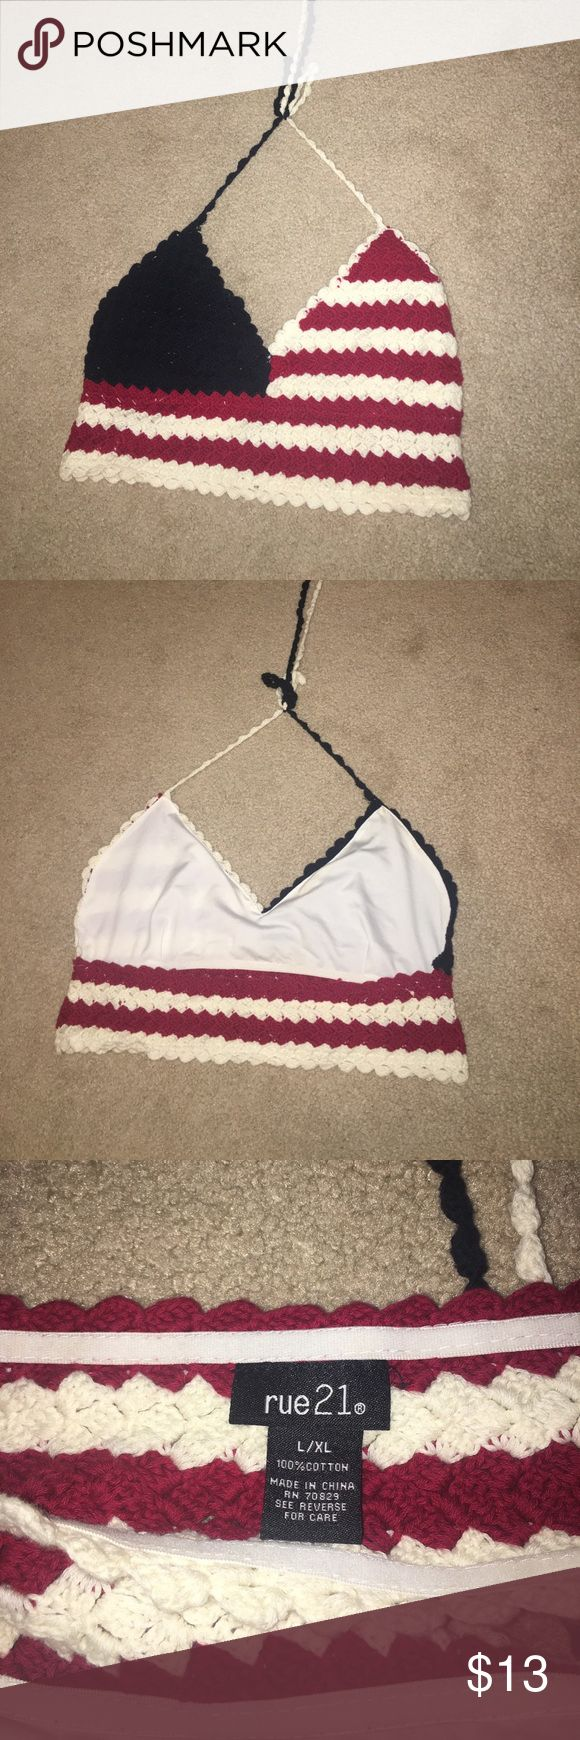 Crochet American Flag Crop From Rue 21, worn once, perfect for the forth of July! Be sure to bundle! Can ship quickly! Rue 21 Tops Crop Tops